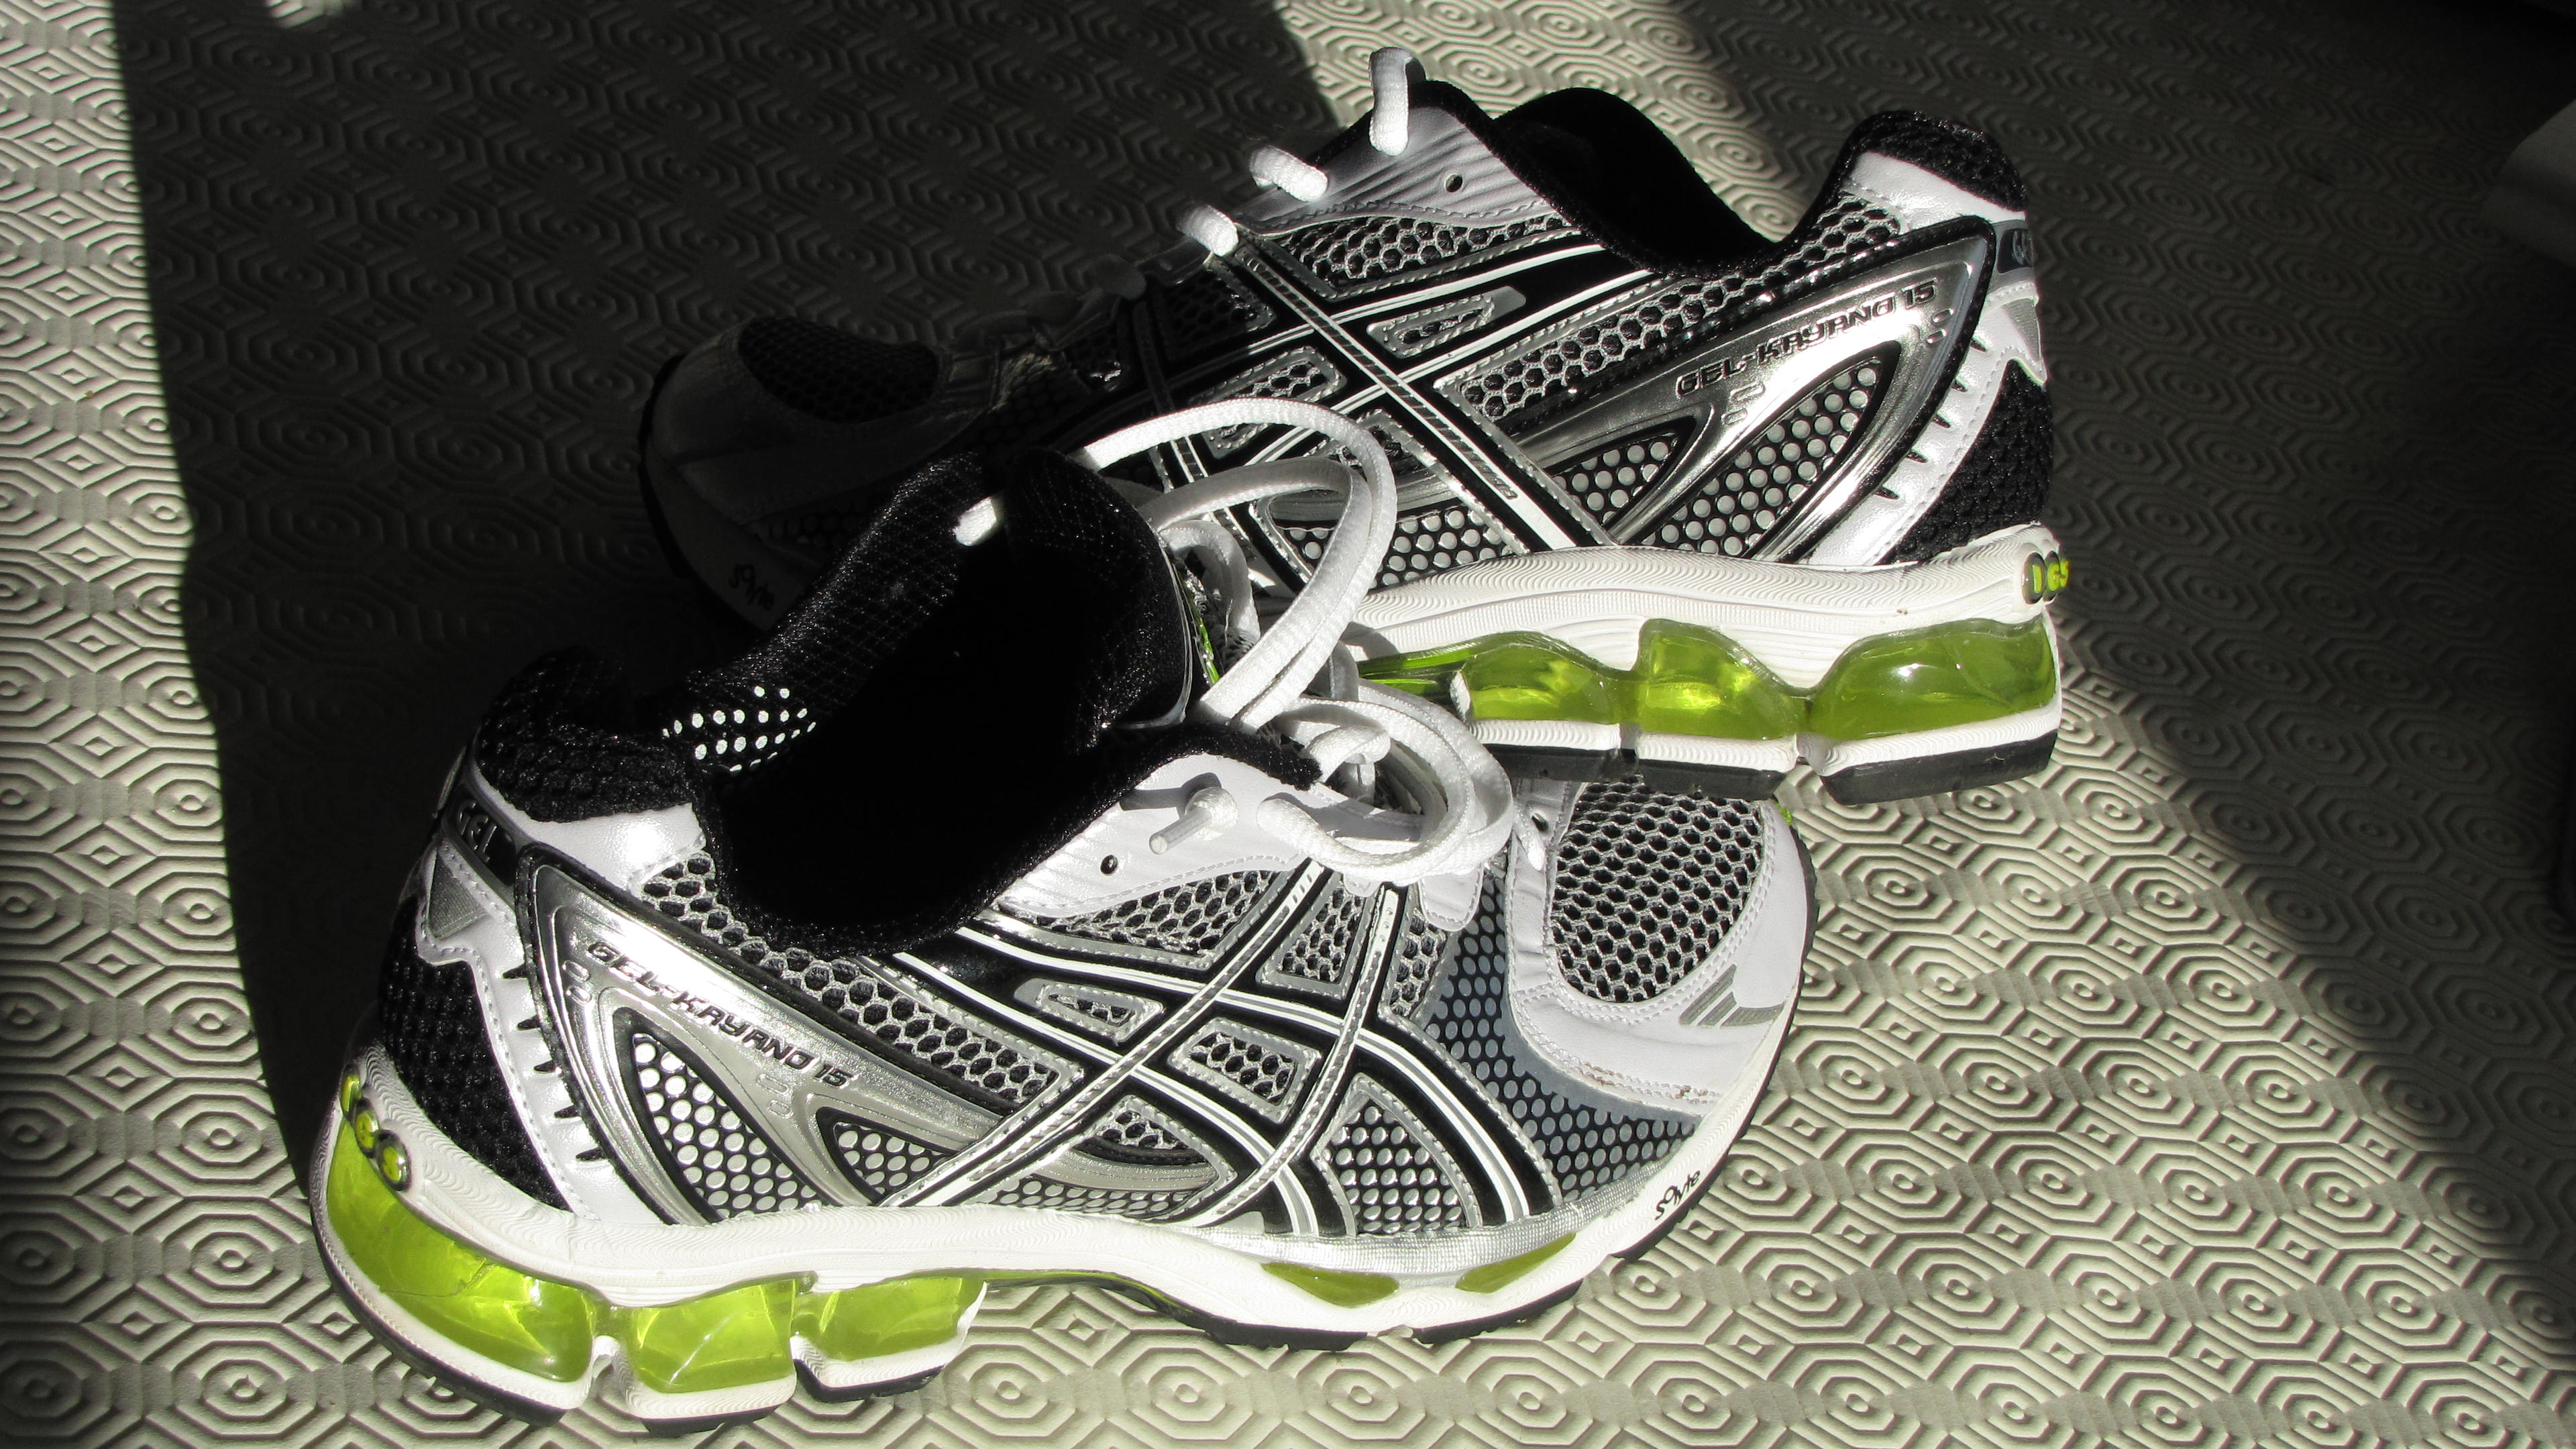 Asic Shoes With Wide Tie Bix